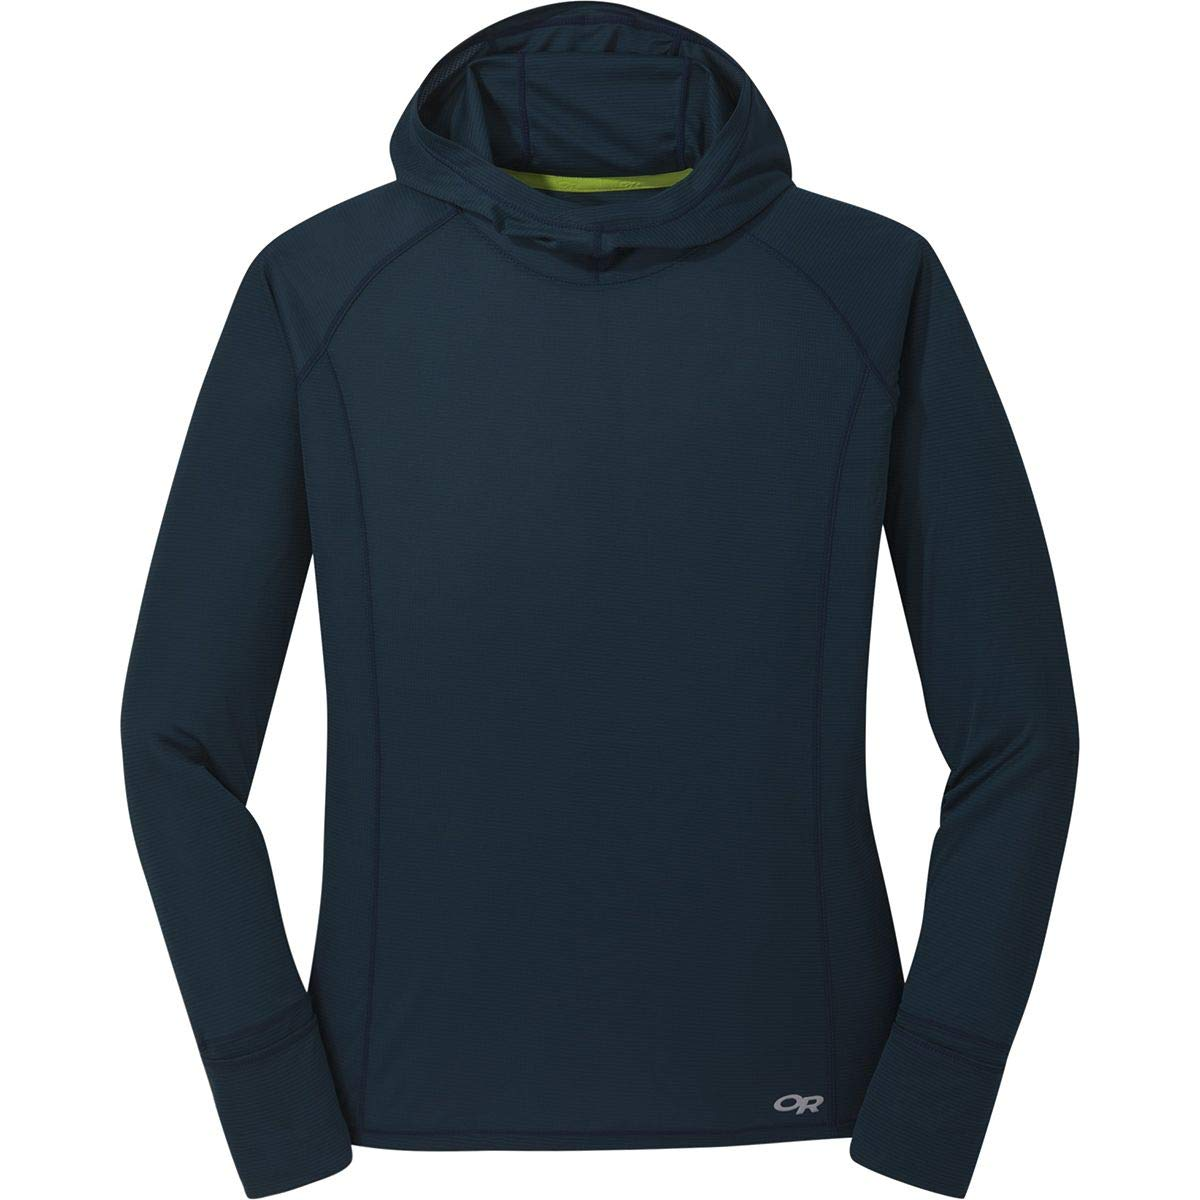 Outdoor Research Echo Hoodie - Women's Prussian Blue, L by Outdoor Research